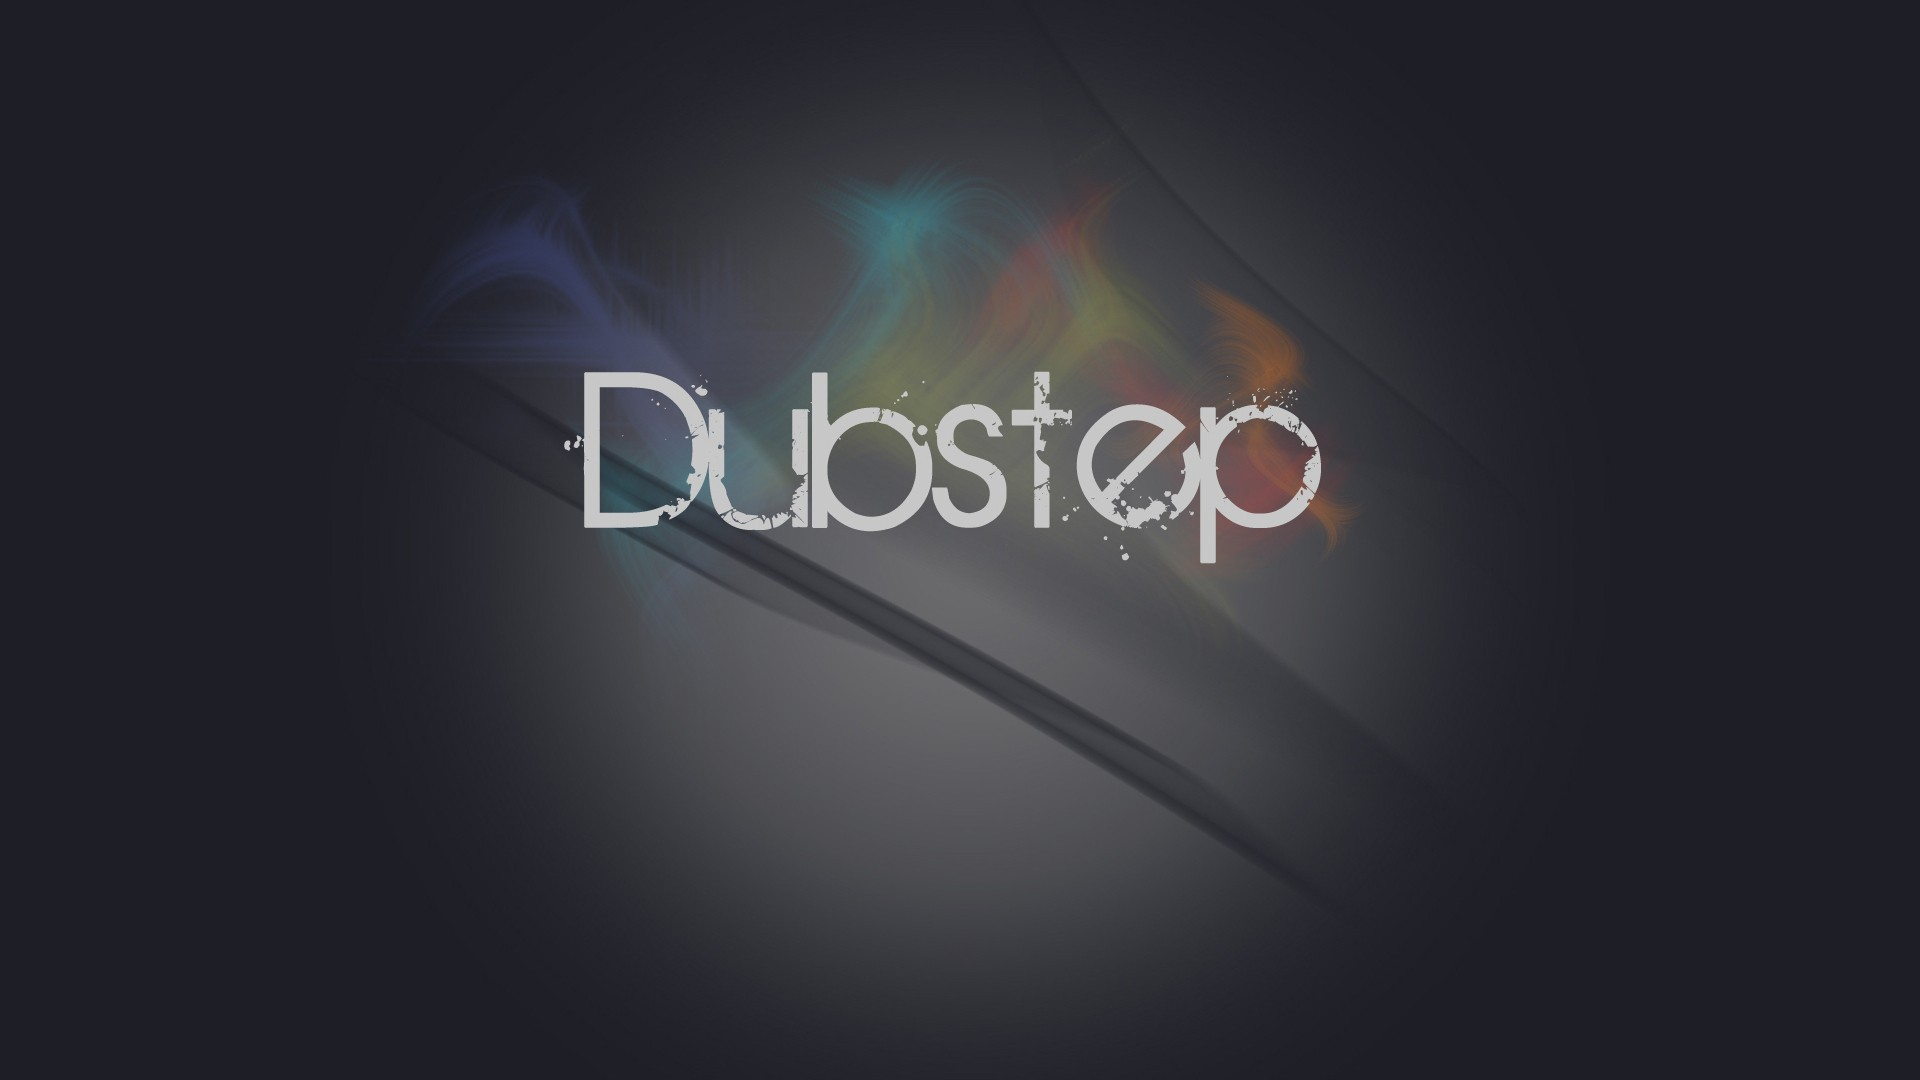 I will create a customized and personalized dubstep song in 1 day